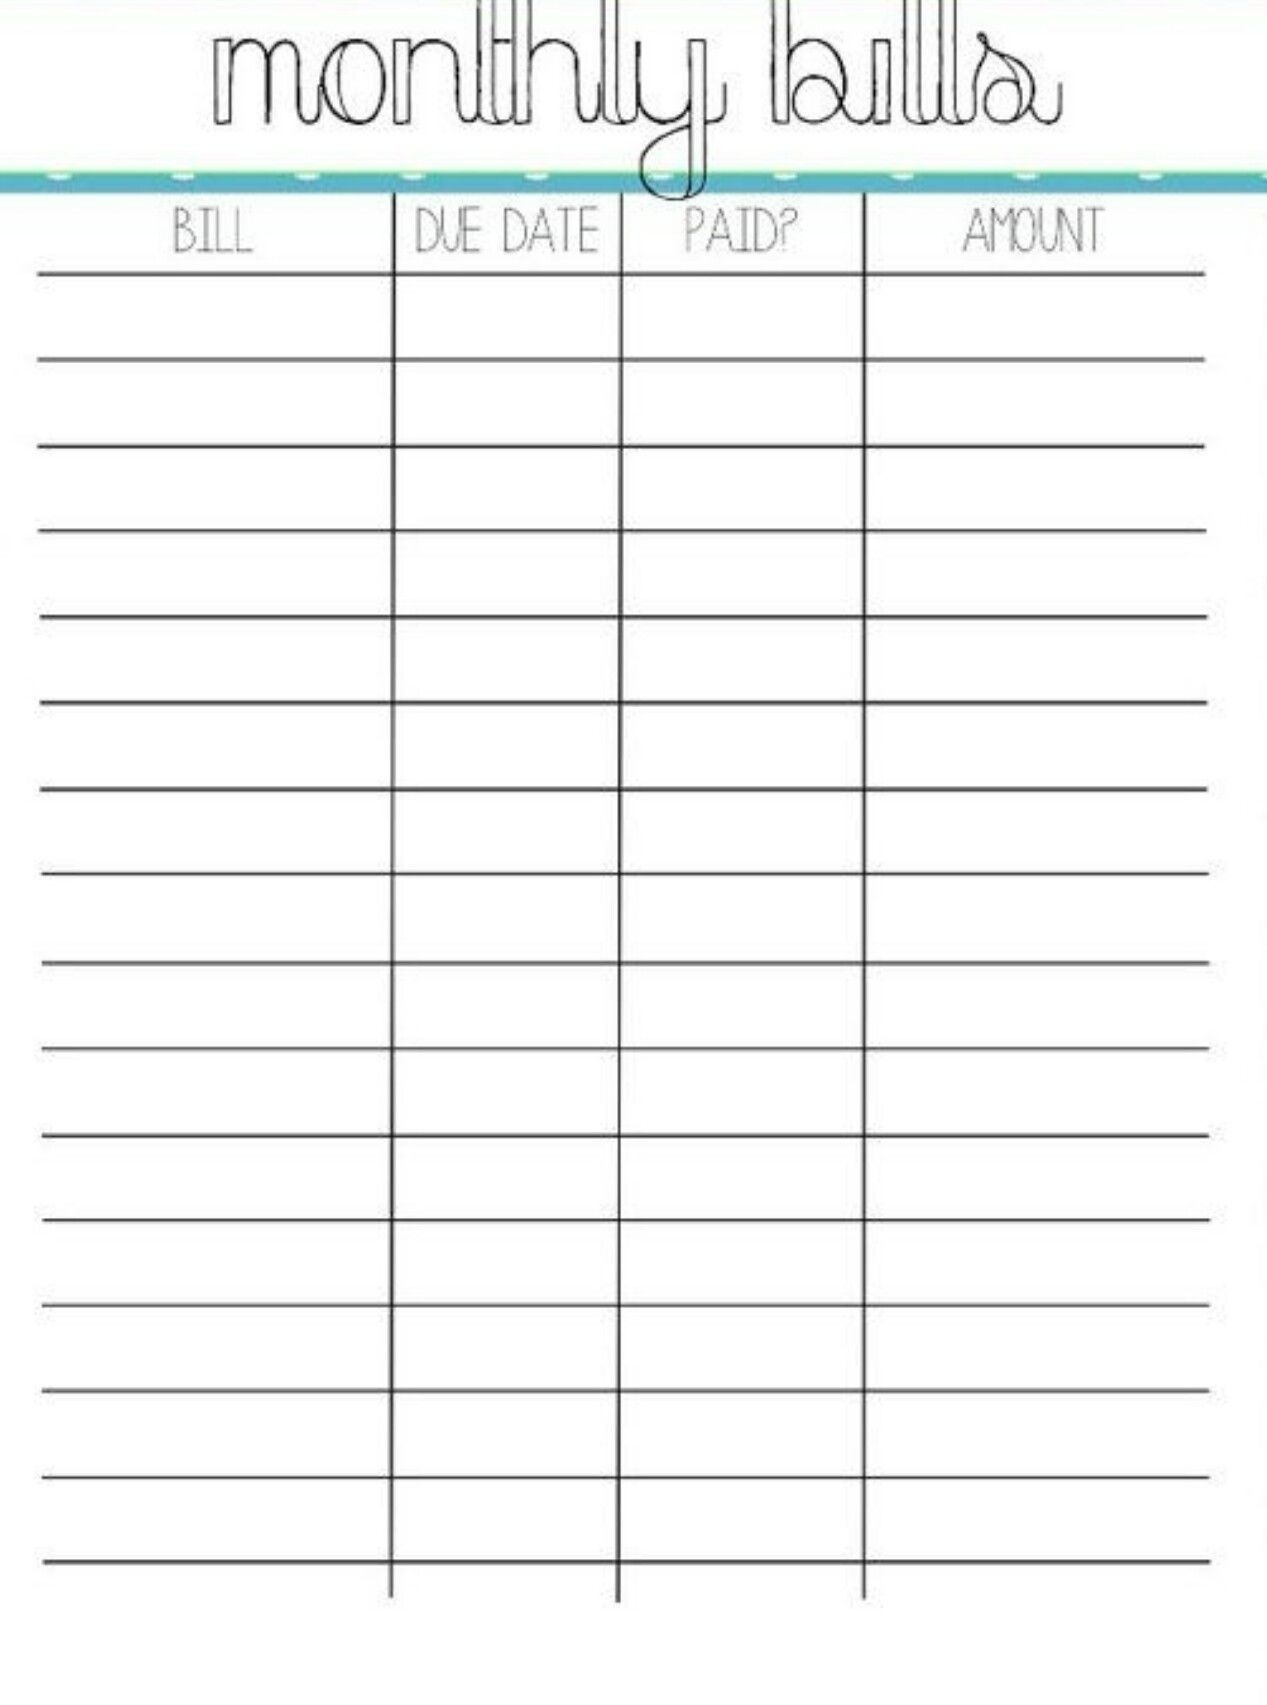 Spreadsheet Bills Budget Bill Payment Monthly Worksheet Pin  Free Printable Bill Pay Worksheet